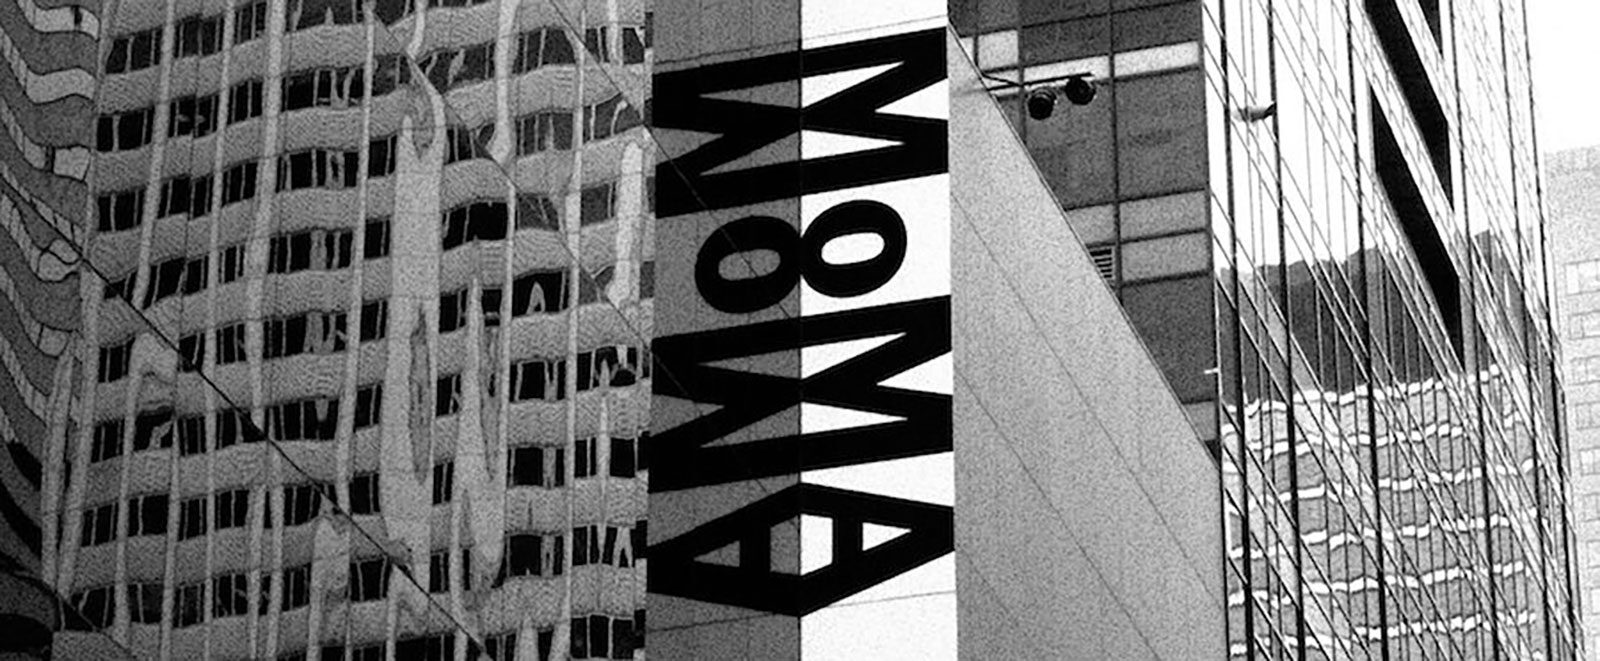 MoMa, the Whitney, Brooklyn Museum, The Met, The Metropolitan Museum, Fotografiska